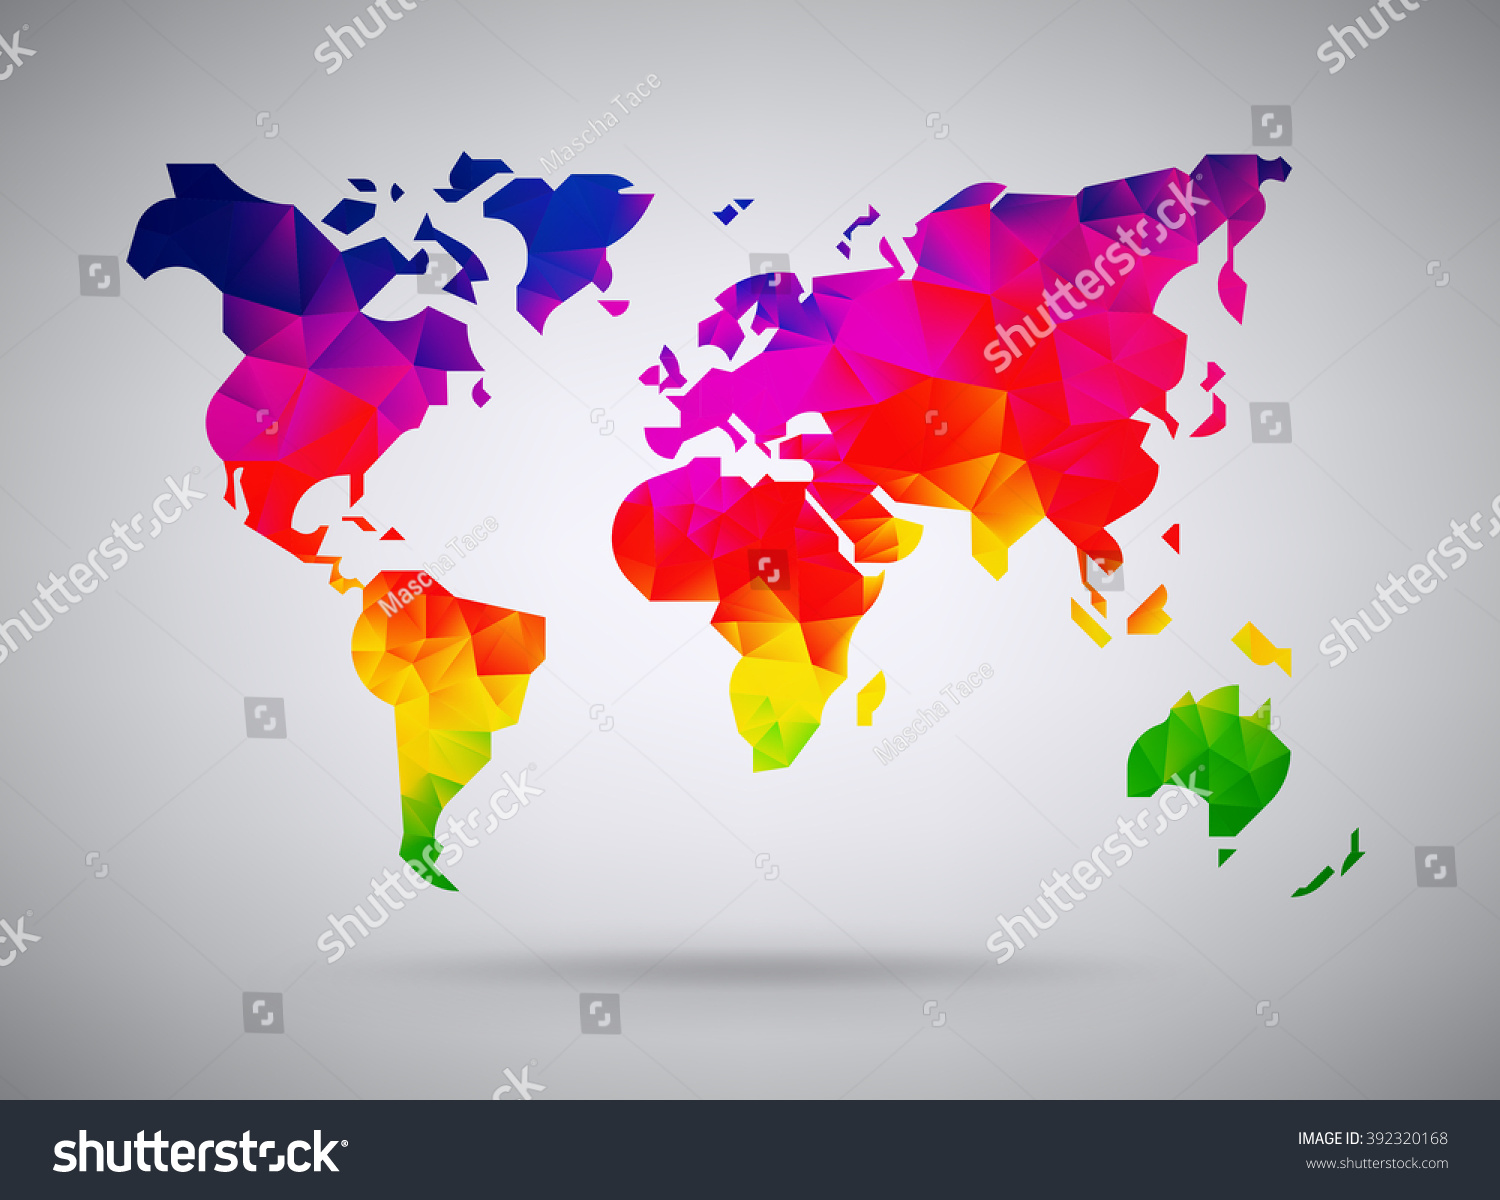 Cool abstract colorful rainbow stylized world vectores en stock cool abstract colorful rainbow stylized world map background in polygonal style continents map low poly gumiabroncs Choice Image